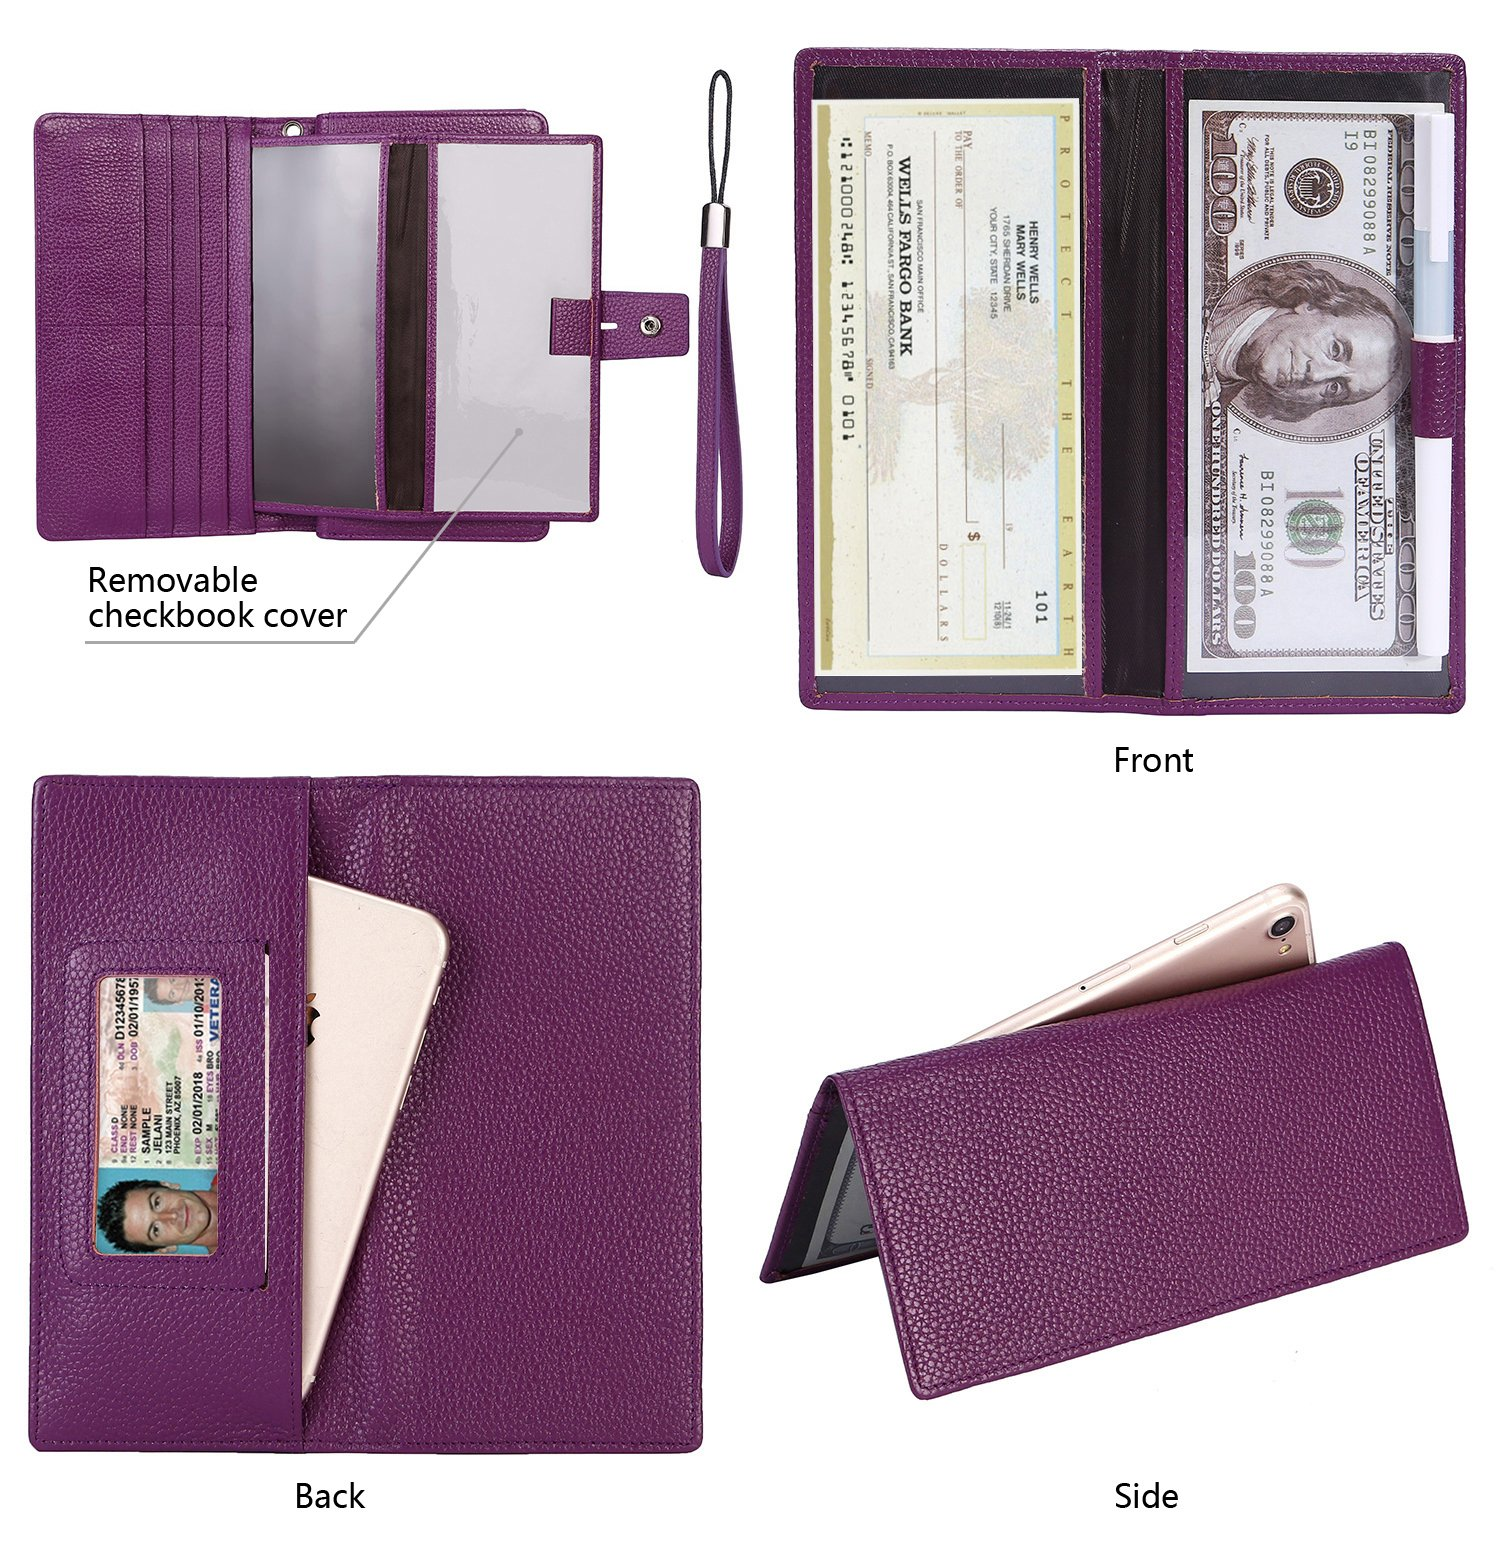 AINIMOER Women's Big RFID Blocking Leather Zip Around Wallets for Womens Clutch Organizer Checkbook Holder Large Travel Purse(Lichee Purple) by AINIMOER (Image #5)